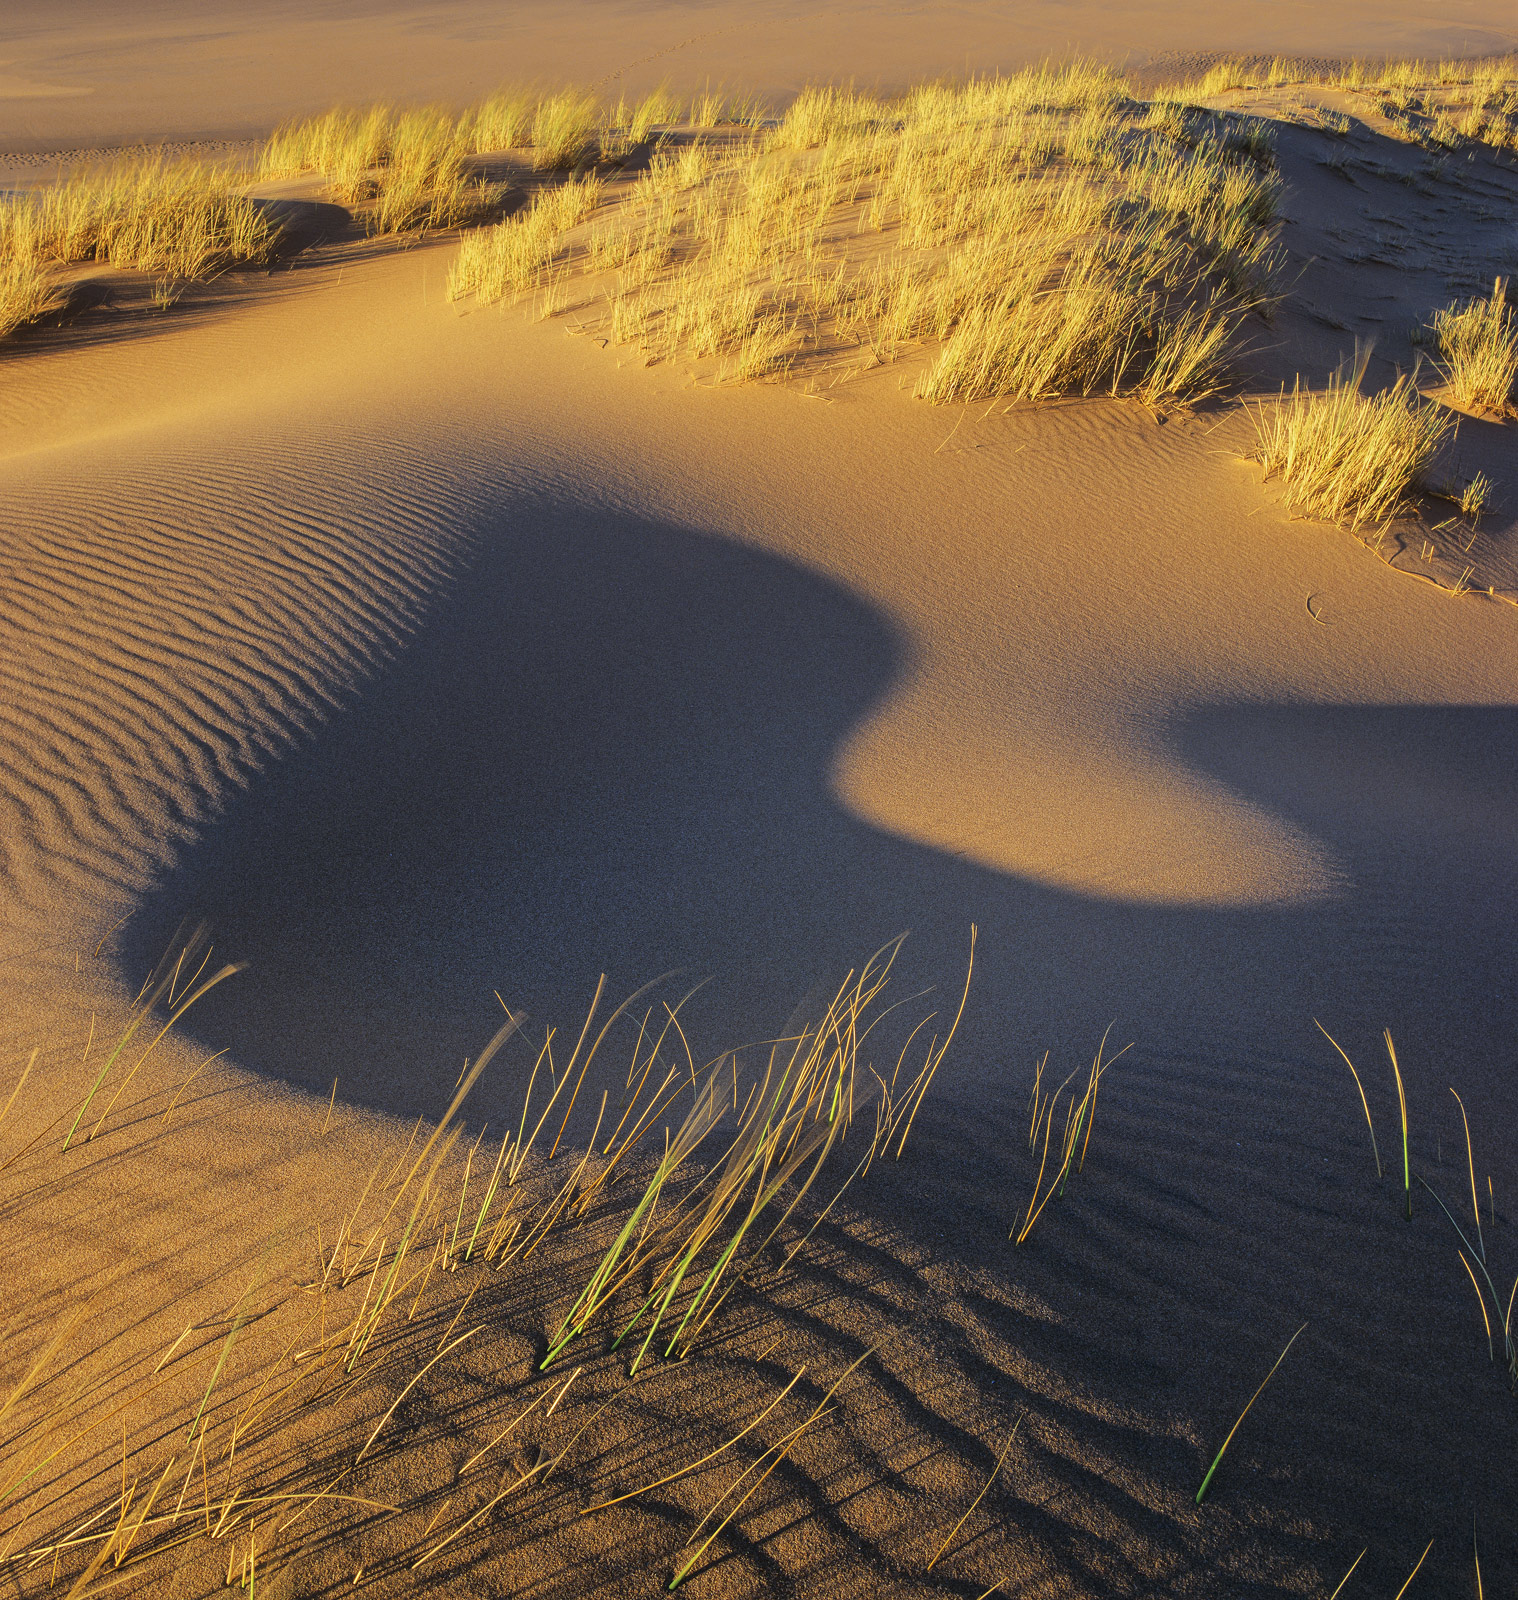 Dune Genie 2, Red Point, Torridon, Scotland, beautiful, shapely, shadow, slopes, dune, blue, rippled, sand, straw, grass, photo